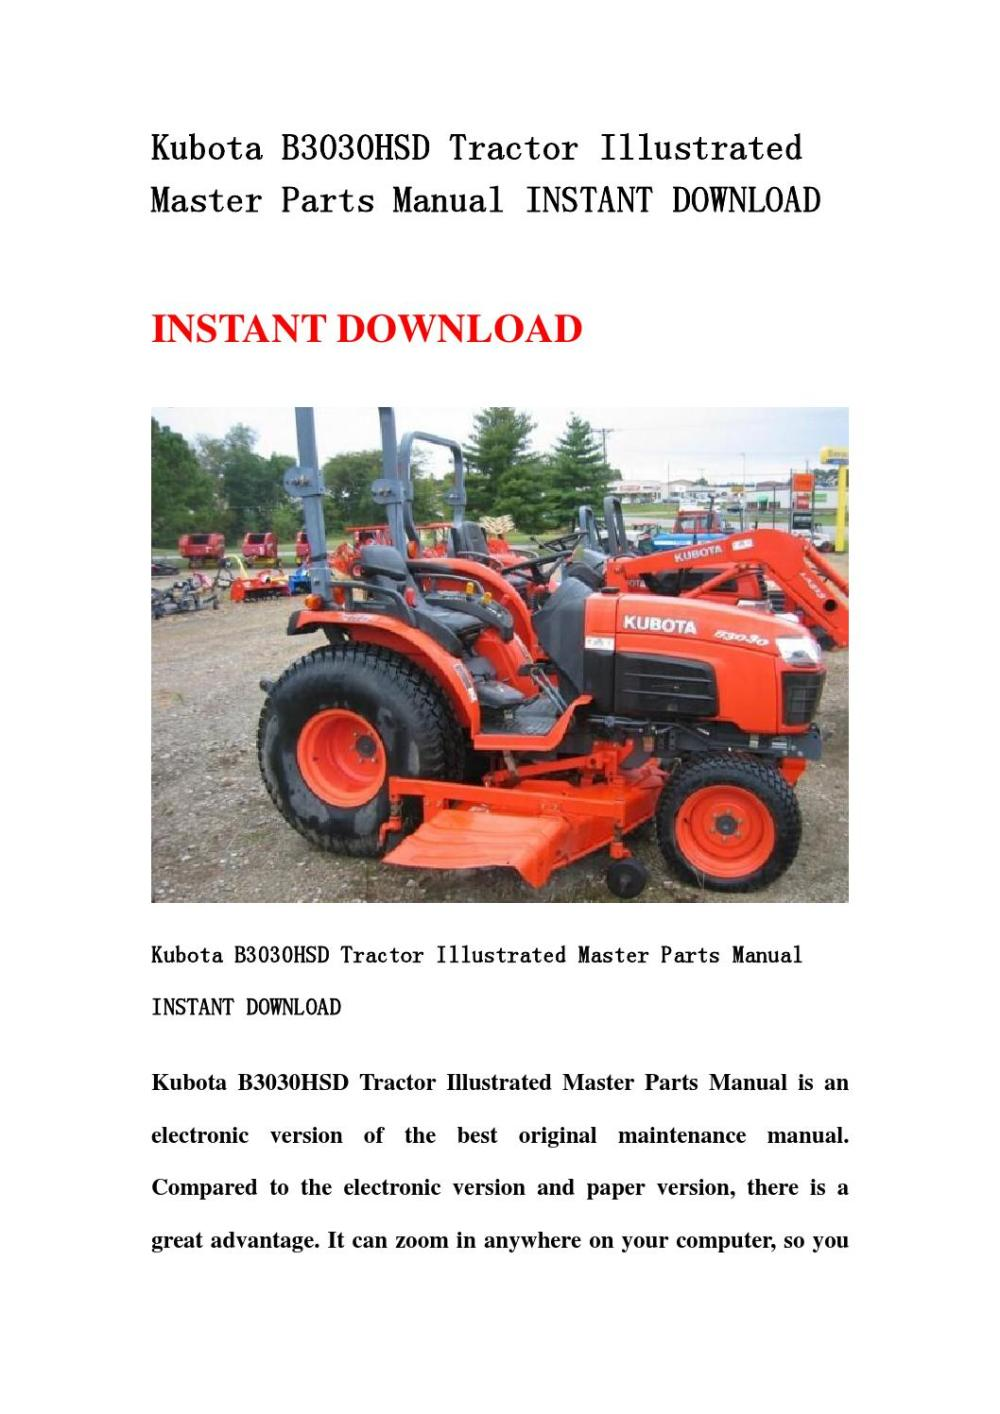 medium resolution of perfect condition ls g compact with factory loader backhoe pages special order catalogs welcome site searching bx22d then ideal service repair b series f